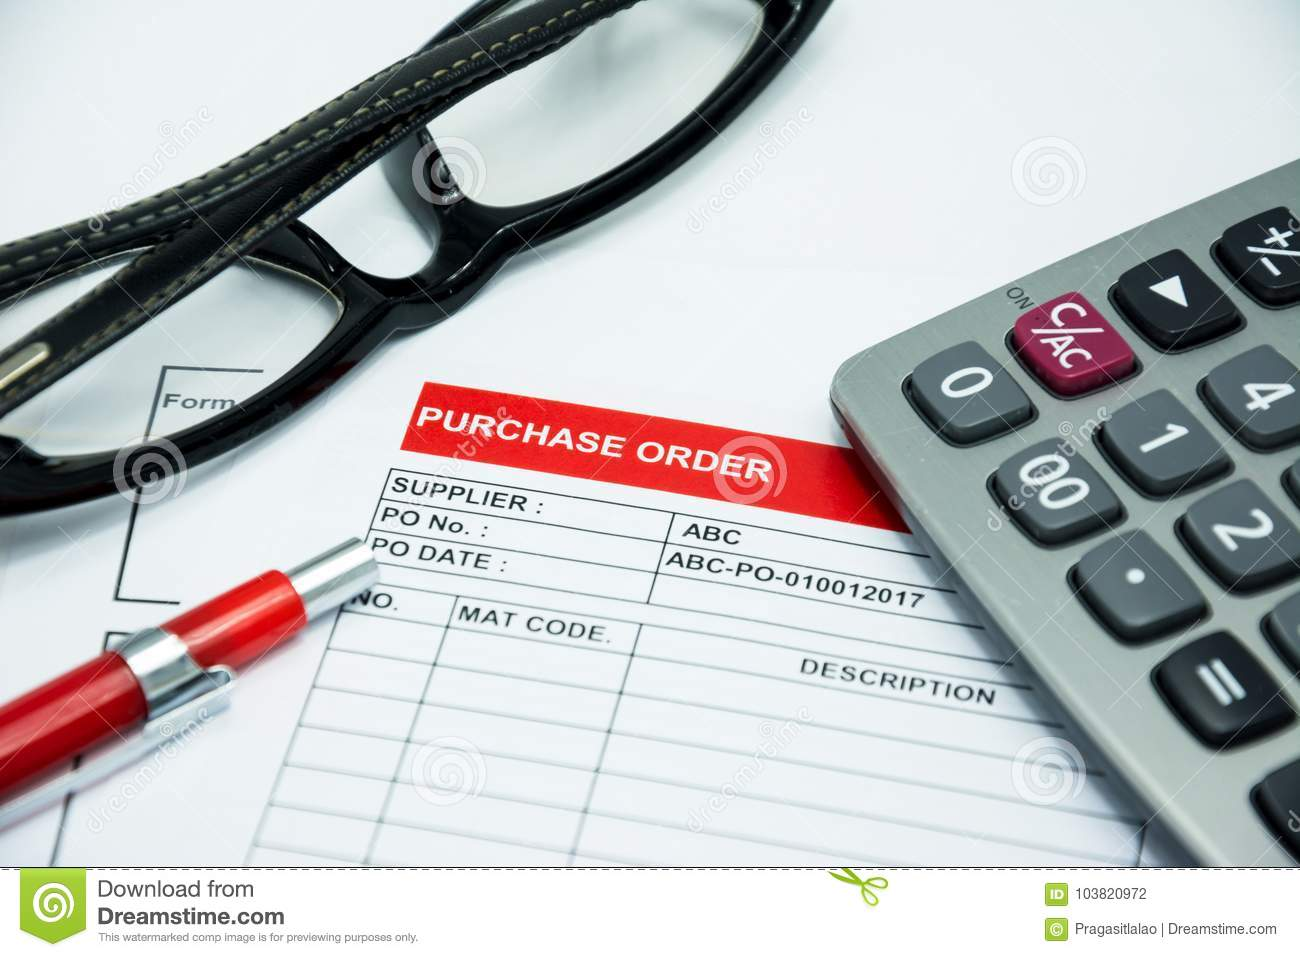 Financial Purchasing Order Contract Sign Concept Background